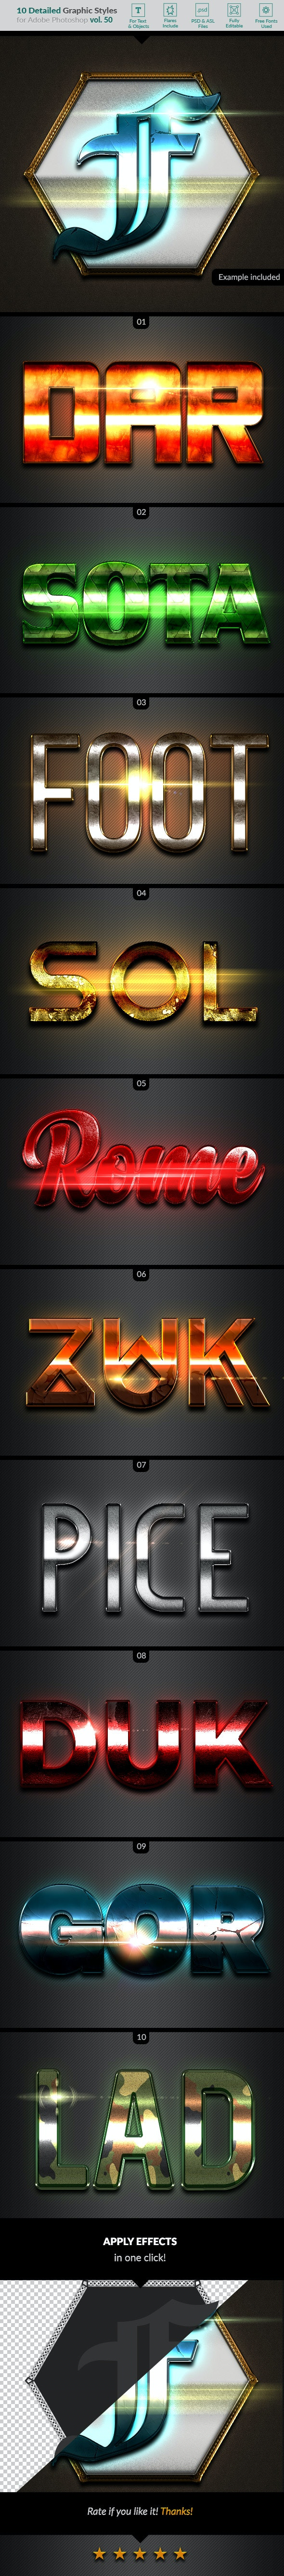 10 Text Effects Vol. 50 - Styles Photoshop